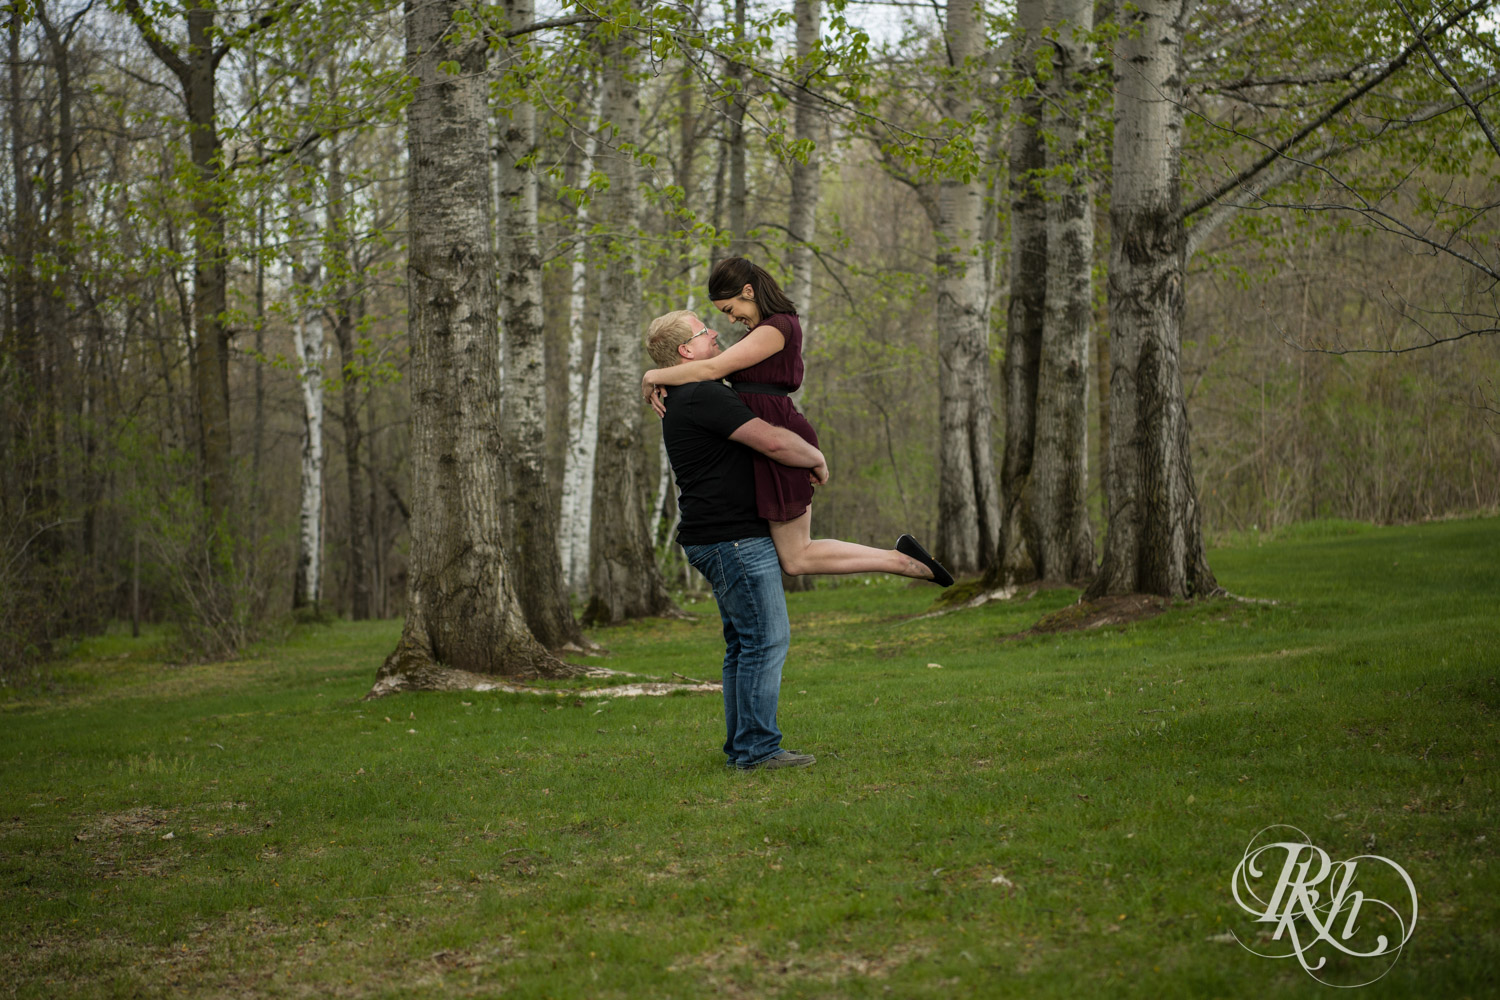 Chelsey & Erik - Minnesota Engagement Photography - Creekside Farm and Events - Rush City - RKH Images  (8 of 18).jpg